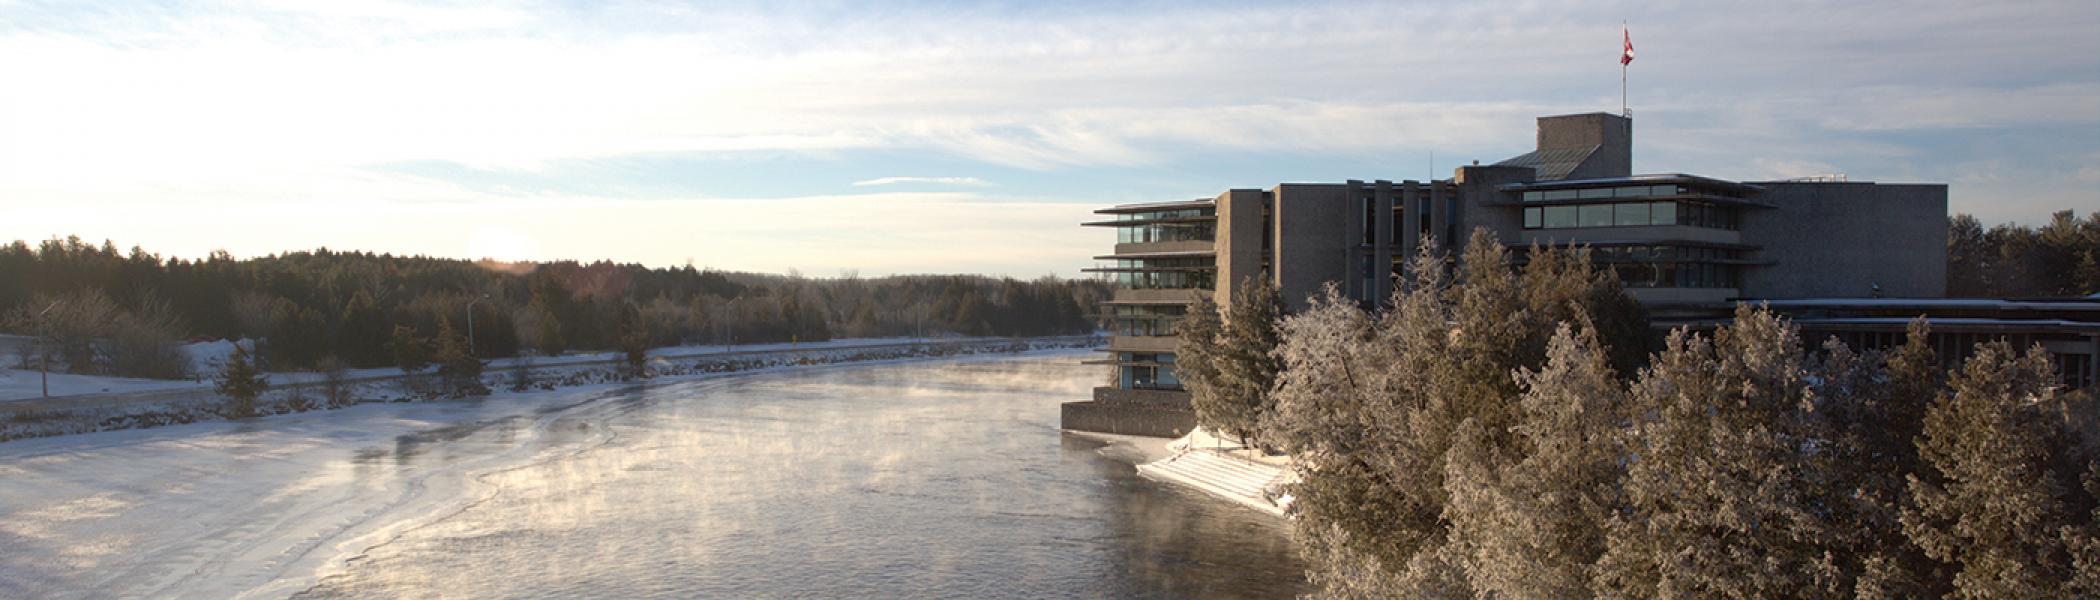 Bata Library and the Otonabee Rover